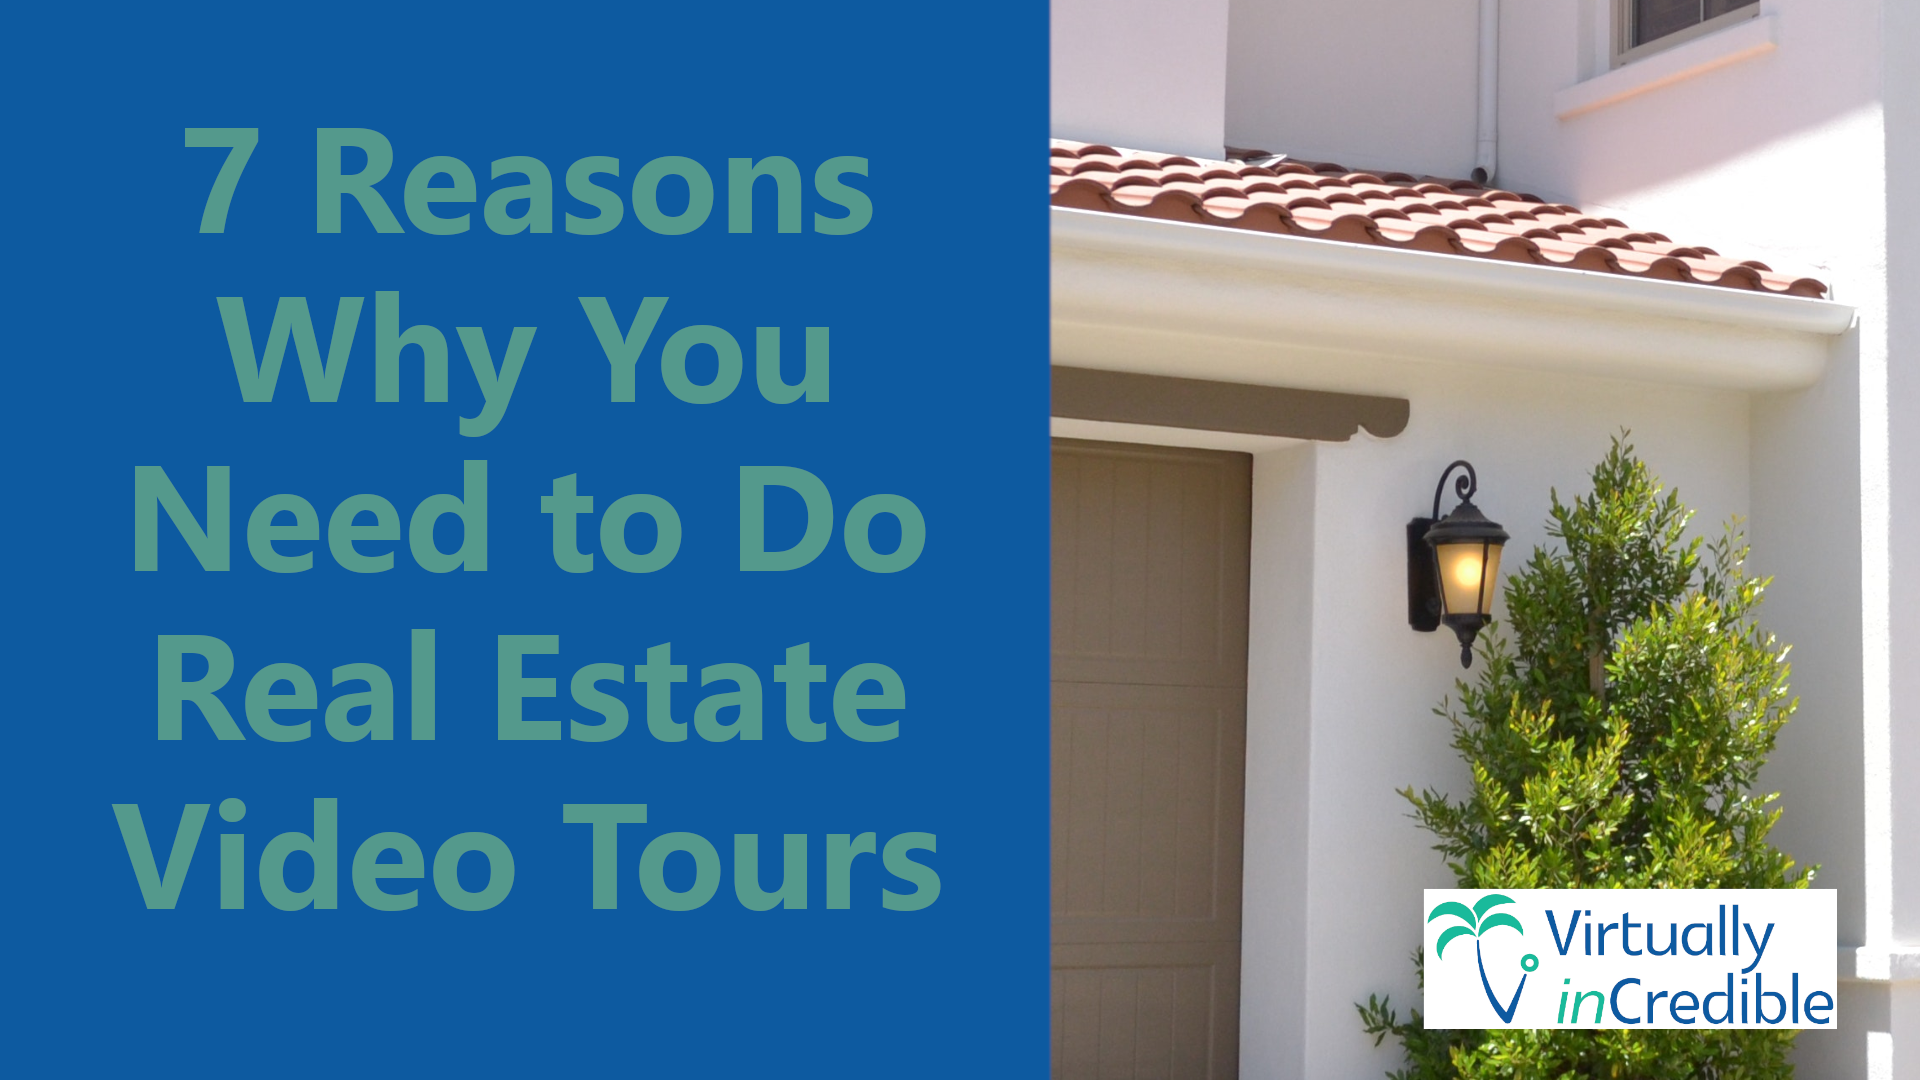 7 reasons to do video tours